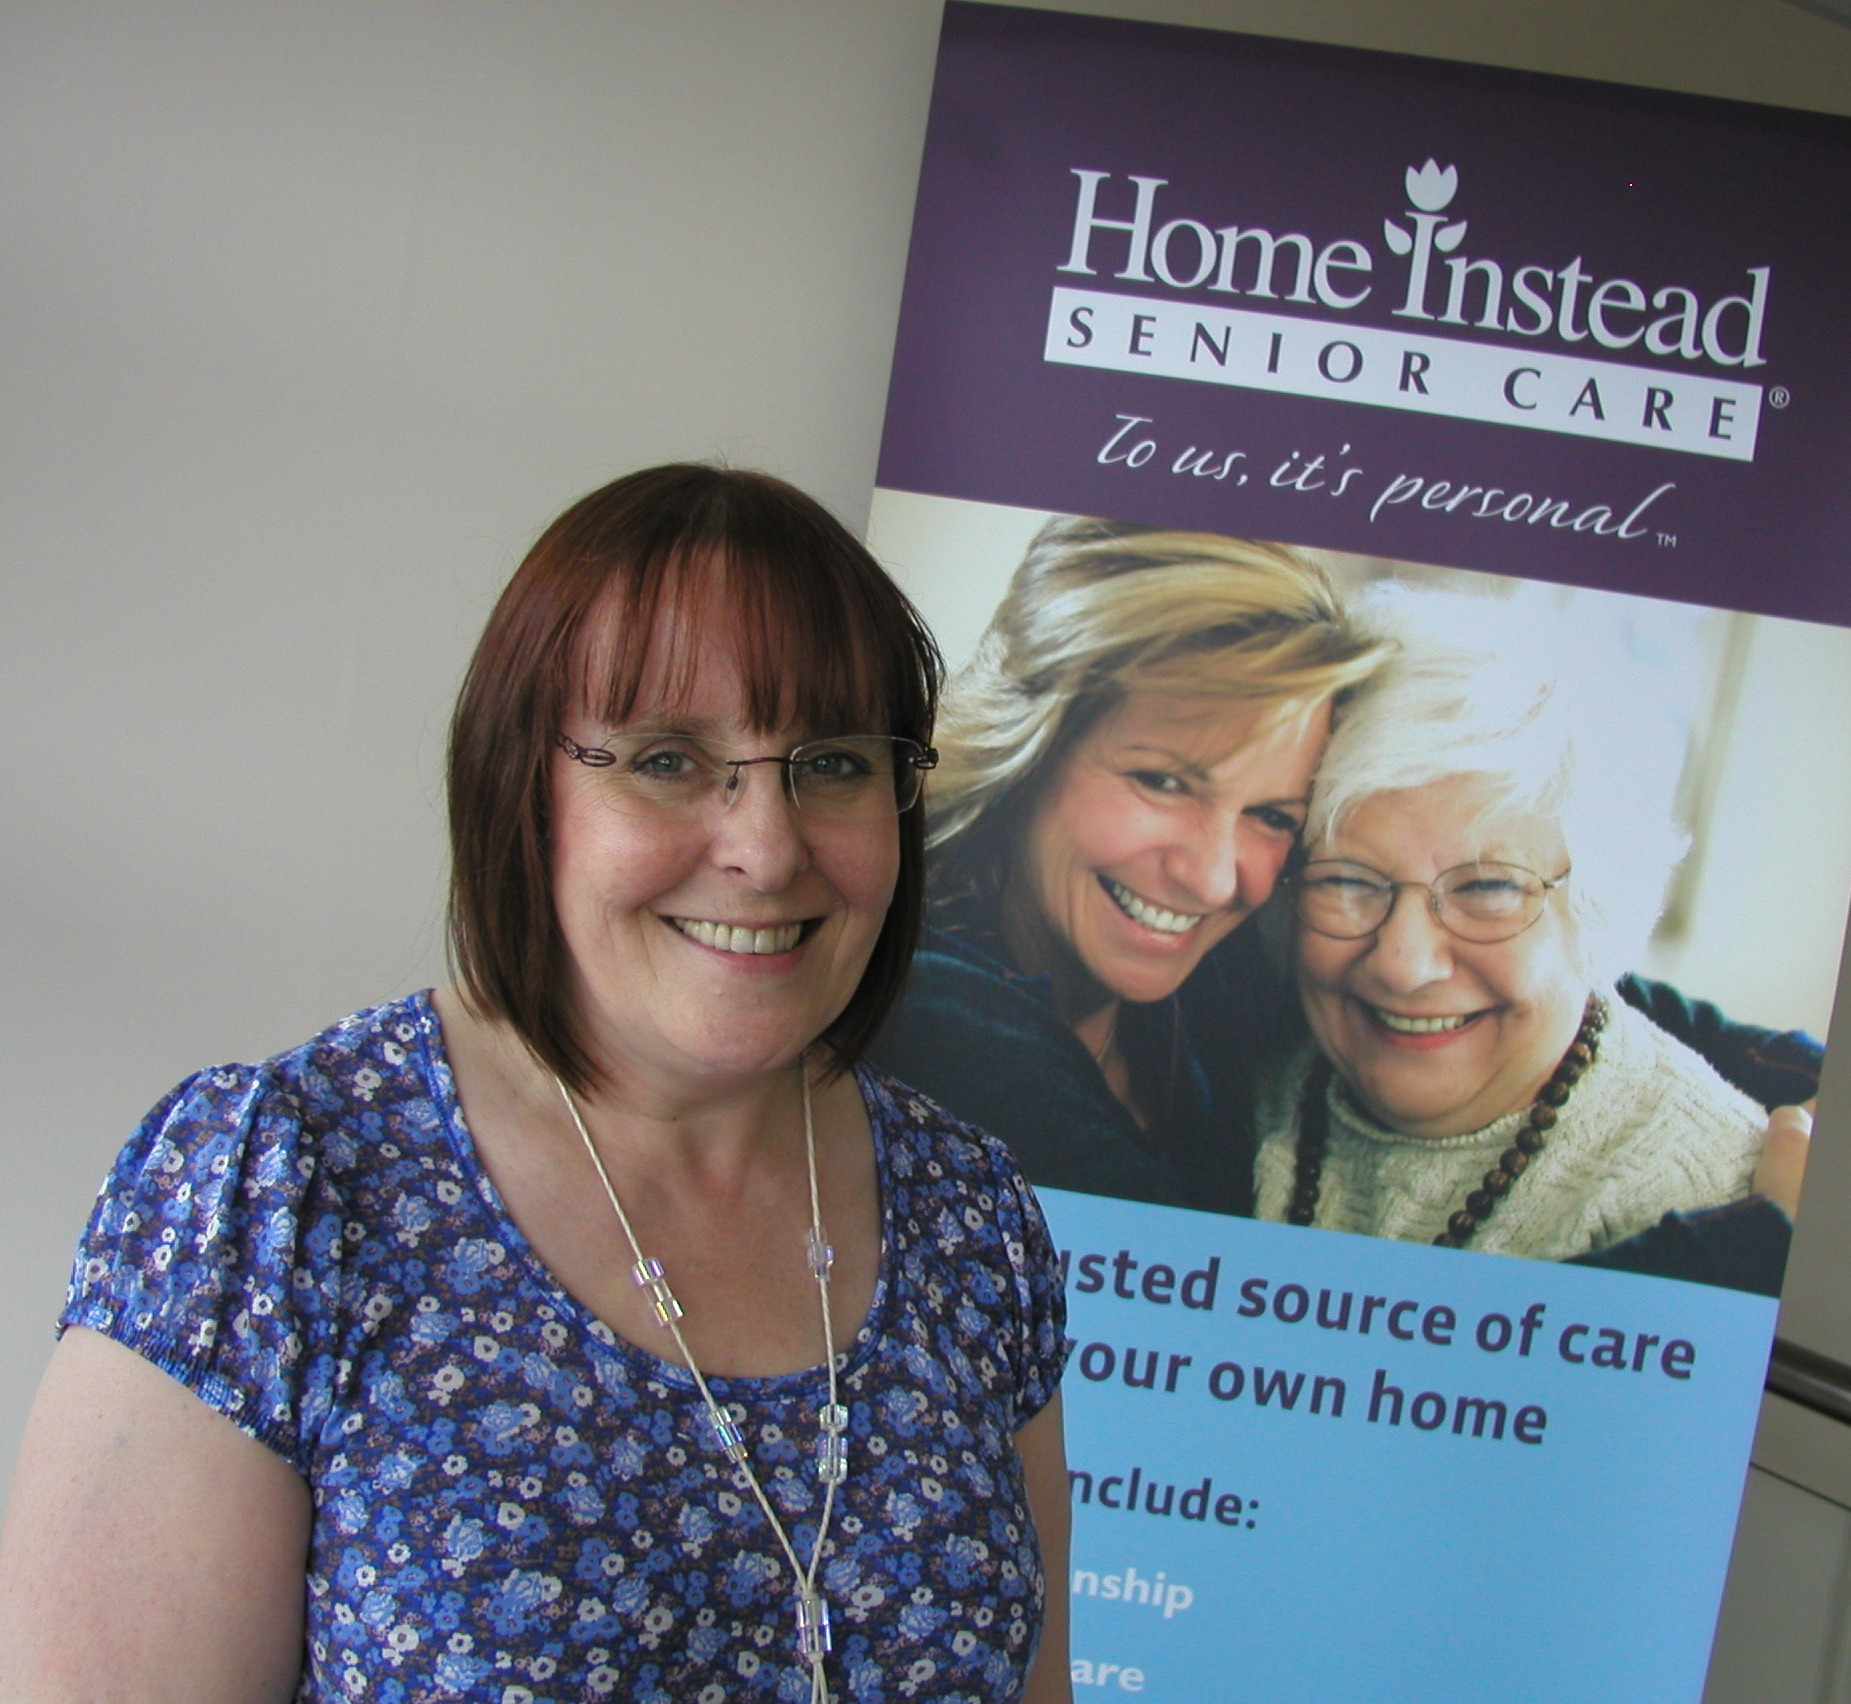 Home Instead Senior Care Portobello newly appointed Care Manager, Jacqui Donachi